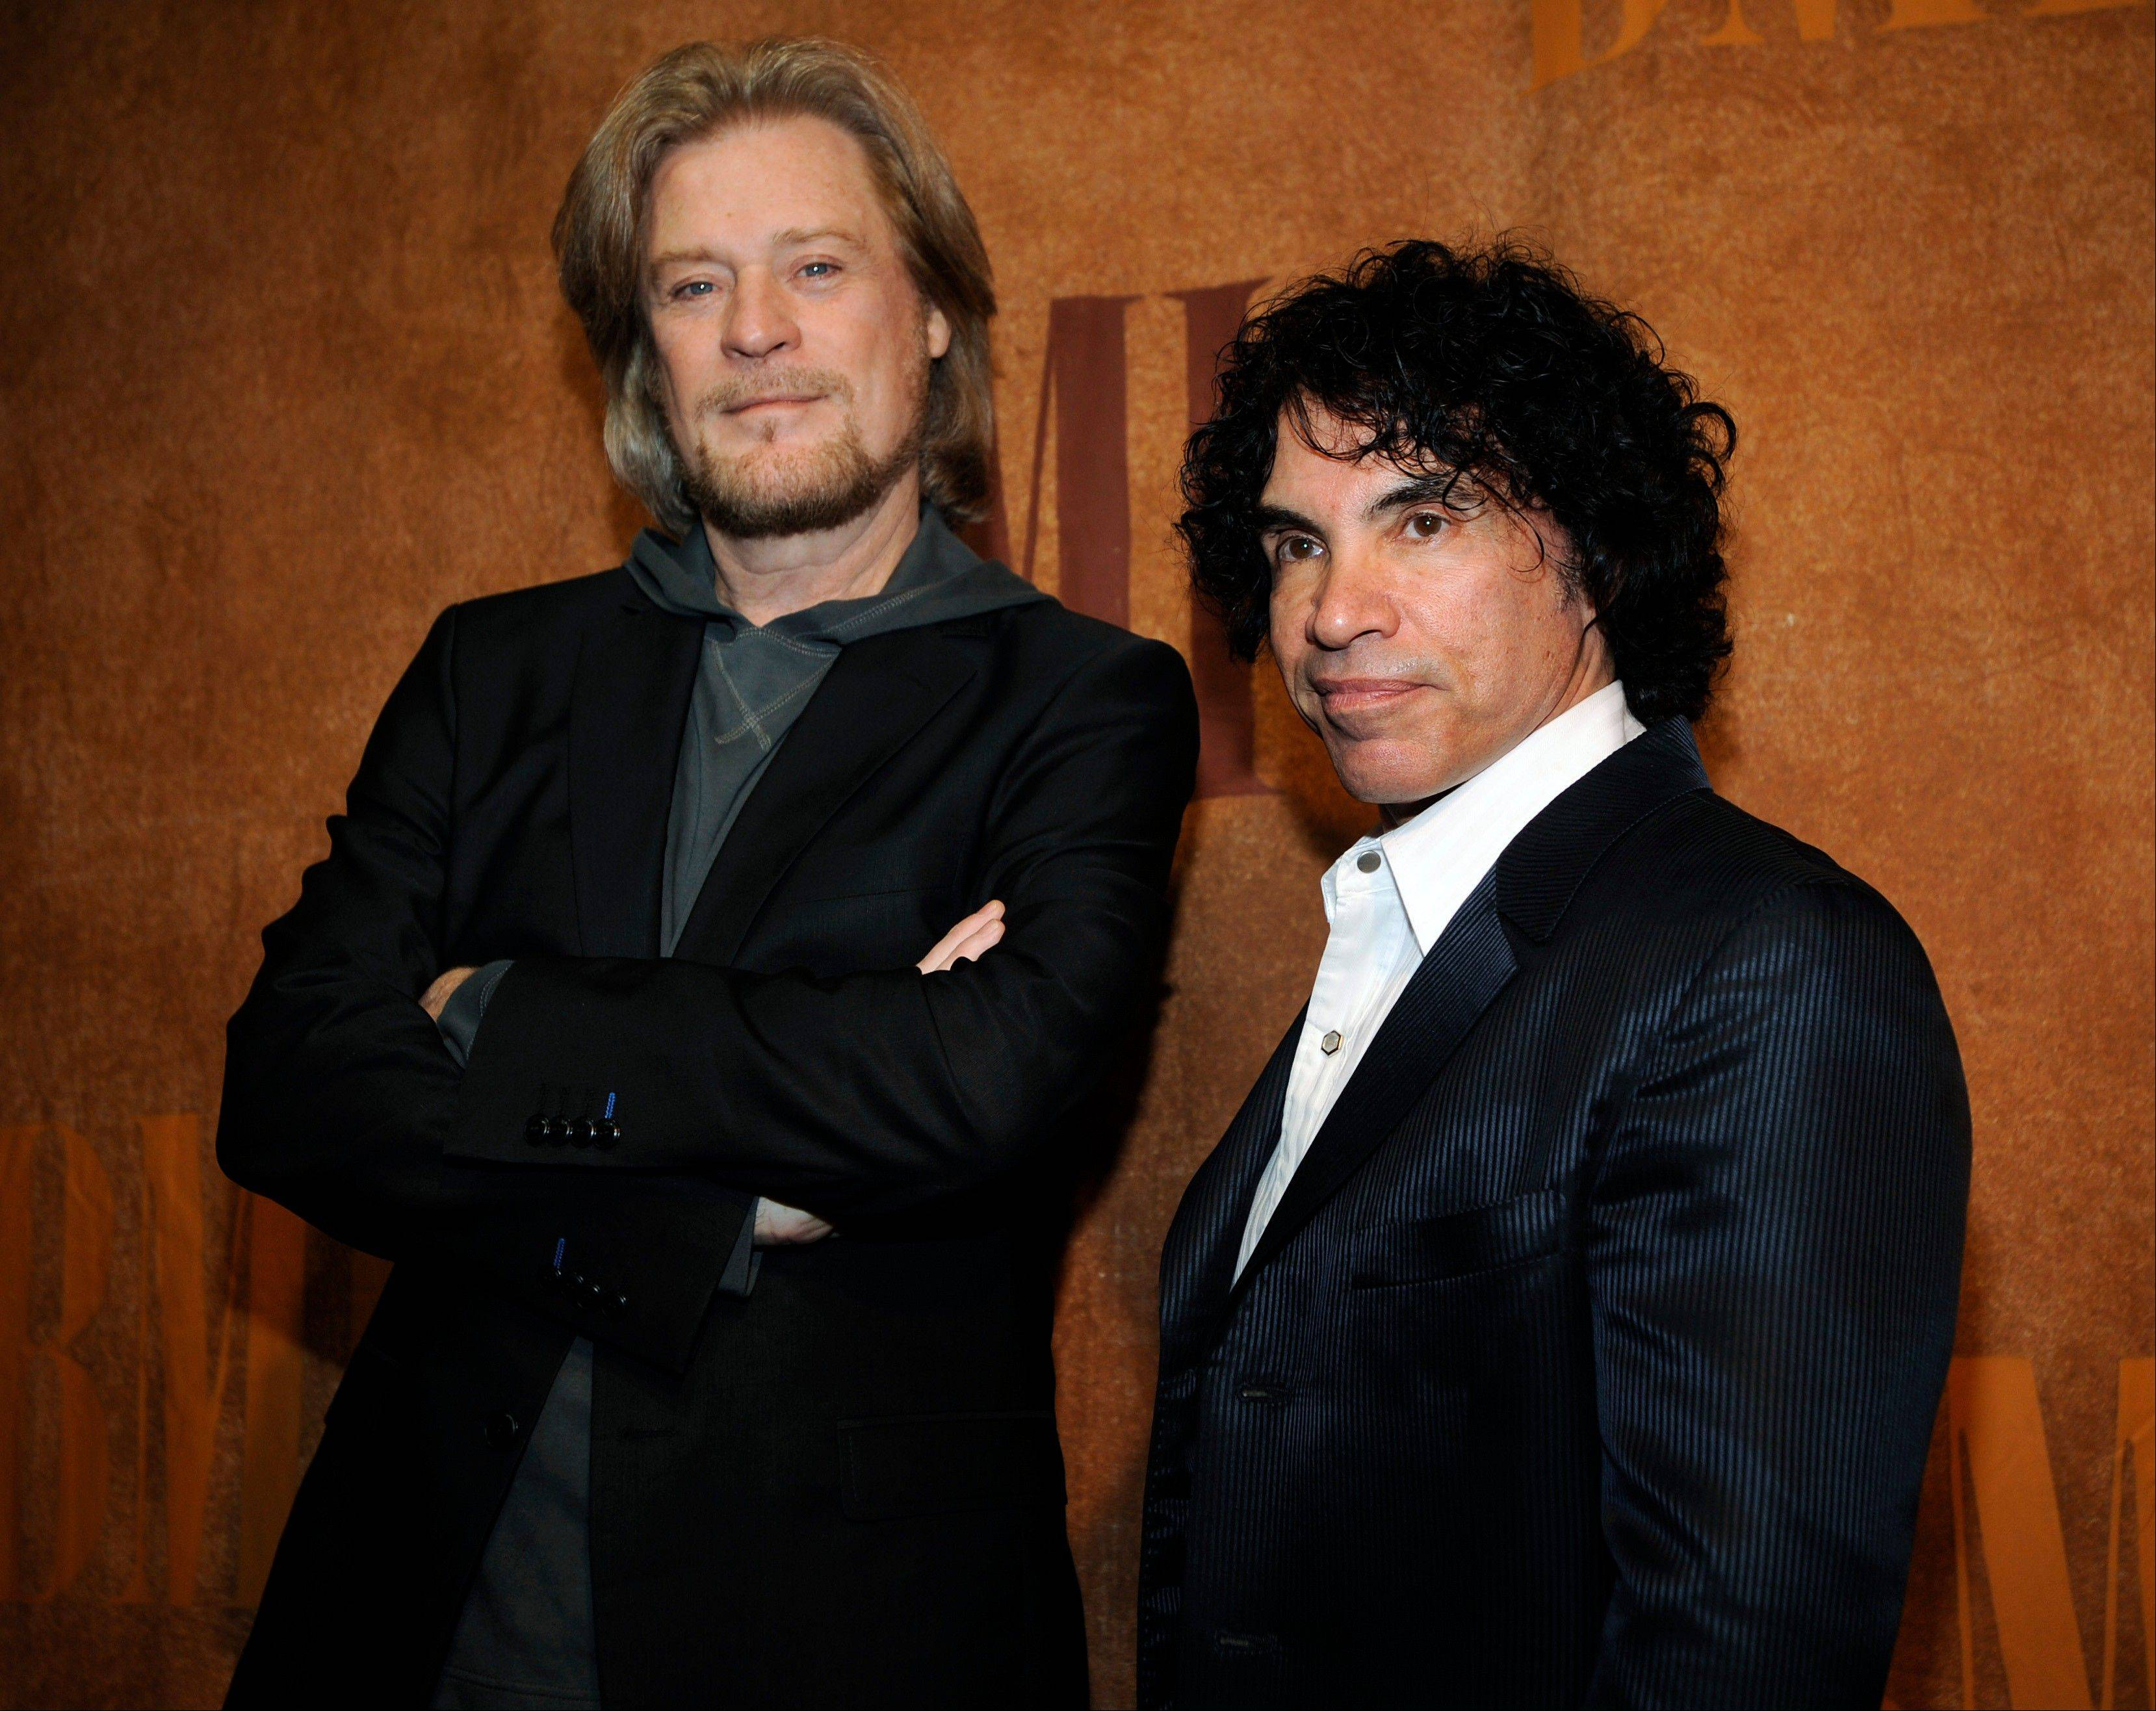 Daryl Hall, left, and John Oates are among first-time nominees for the Rock and Roll Hall of Fame.